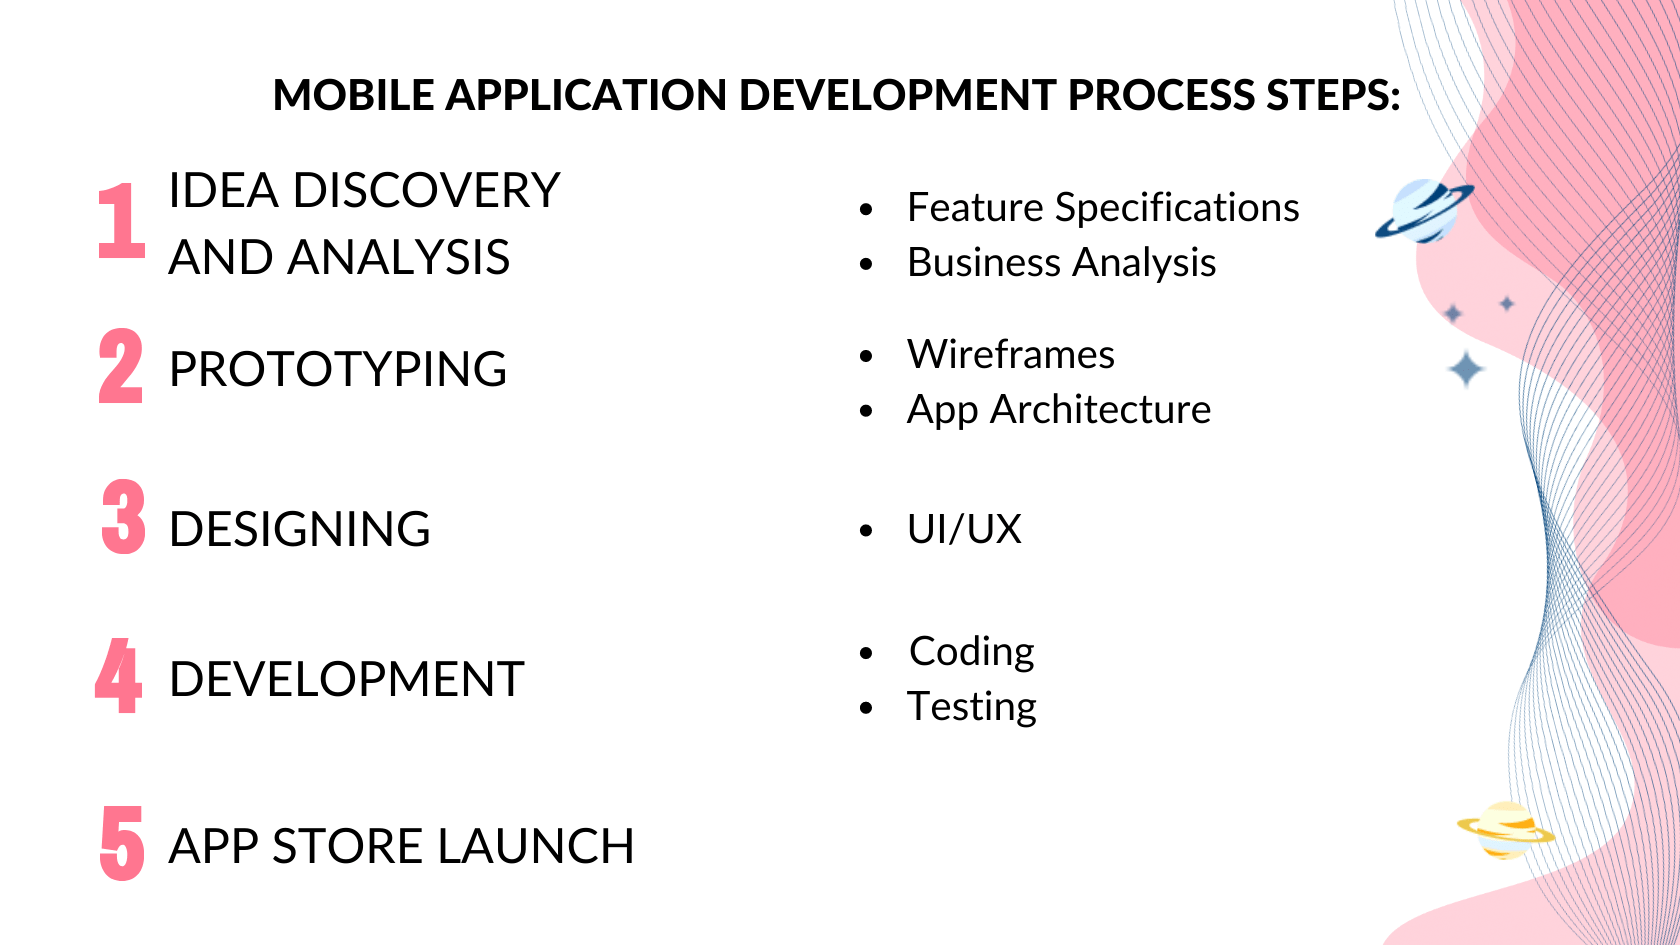 Database architecture tinder Building resiliency